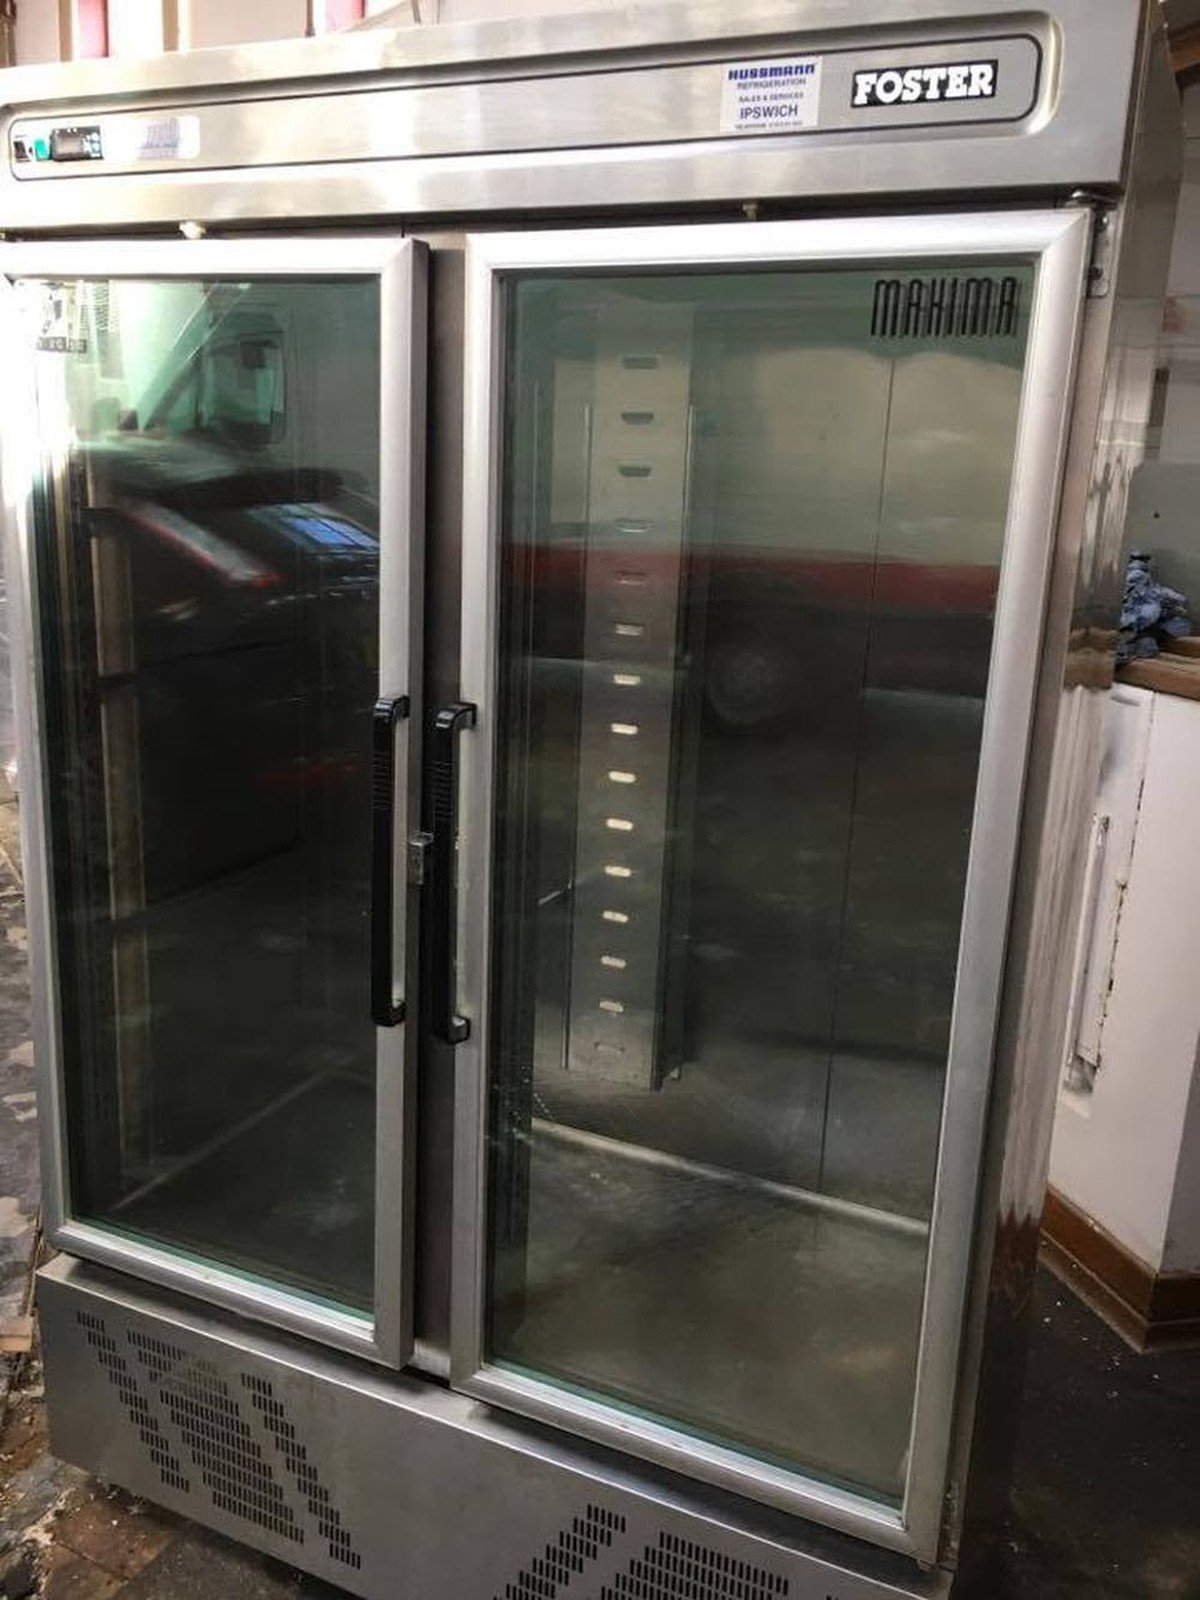 Secondhand Catering Equipment Drinks Fridges Foster